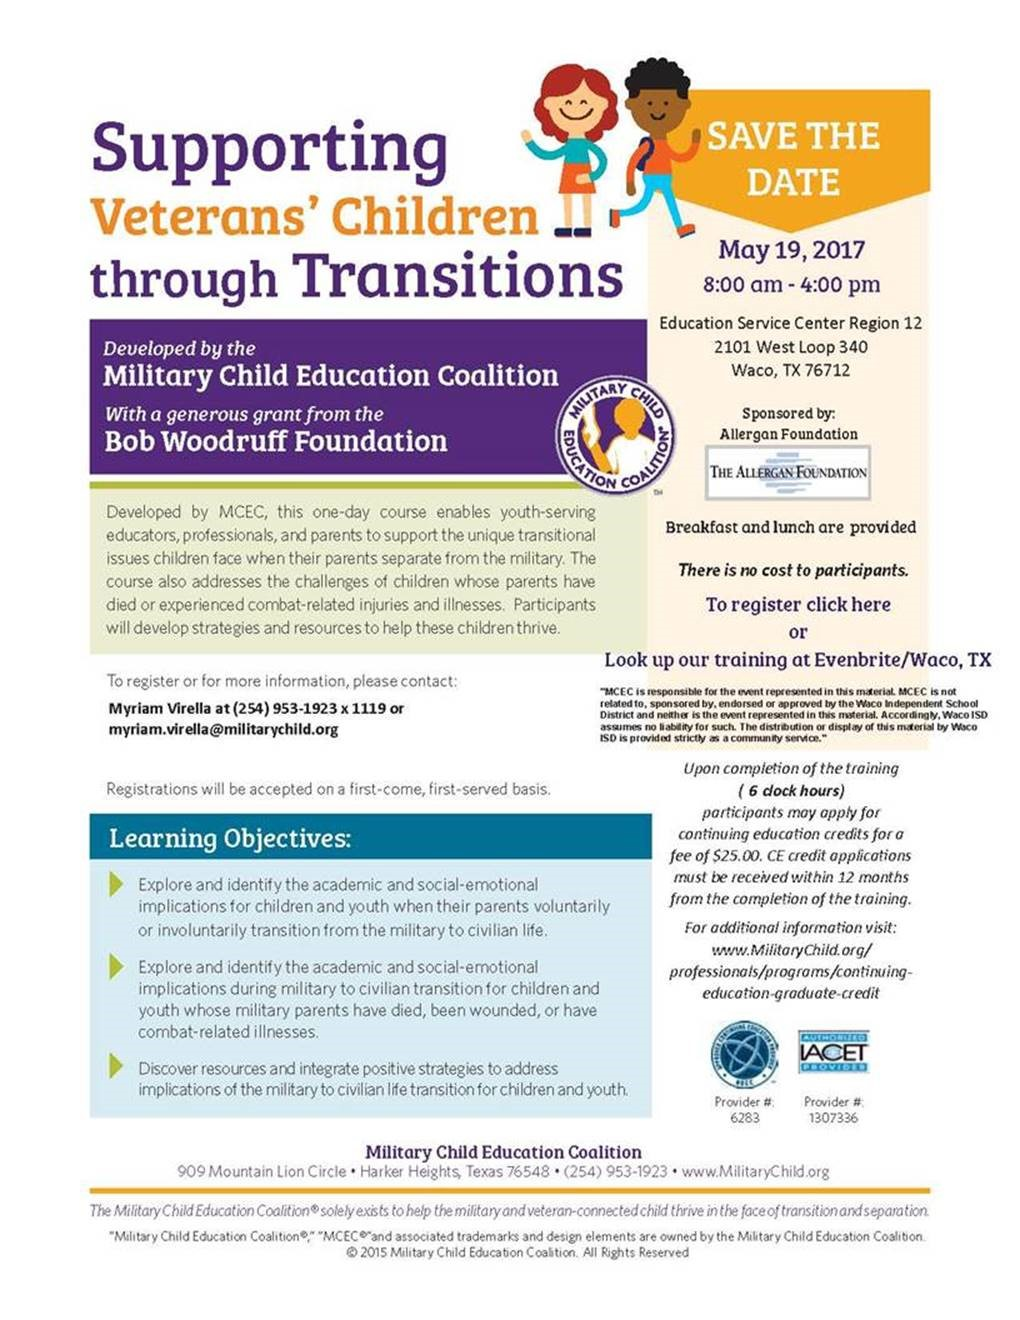 Supporting Veterans' Children through Transitions Course